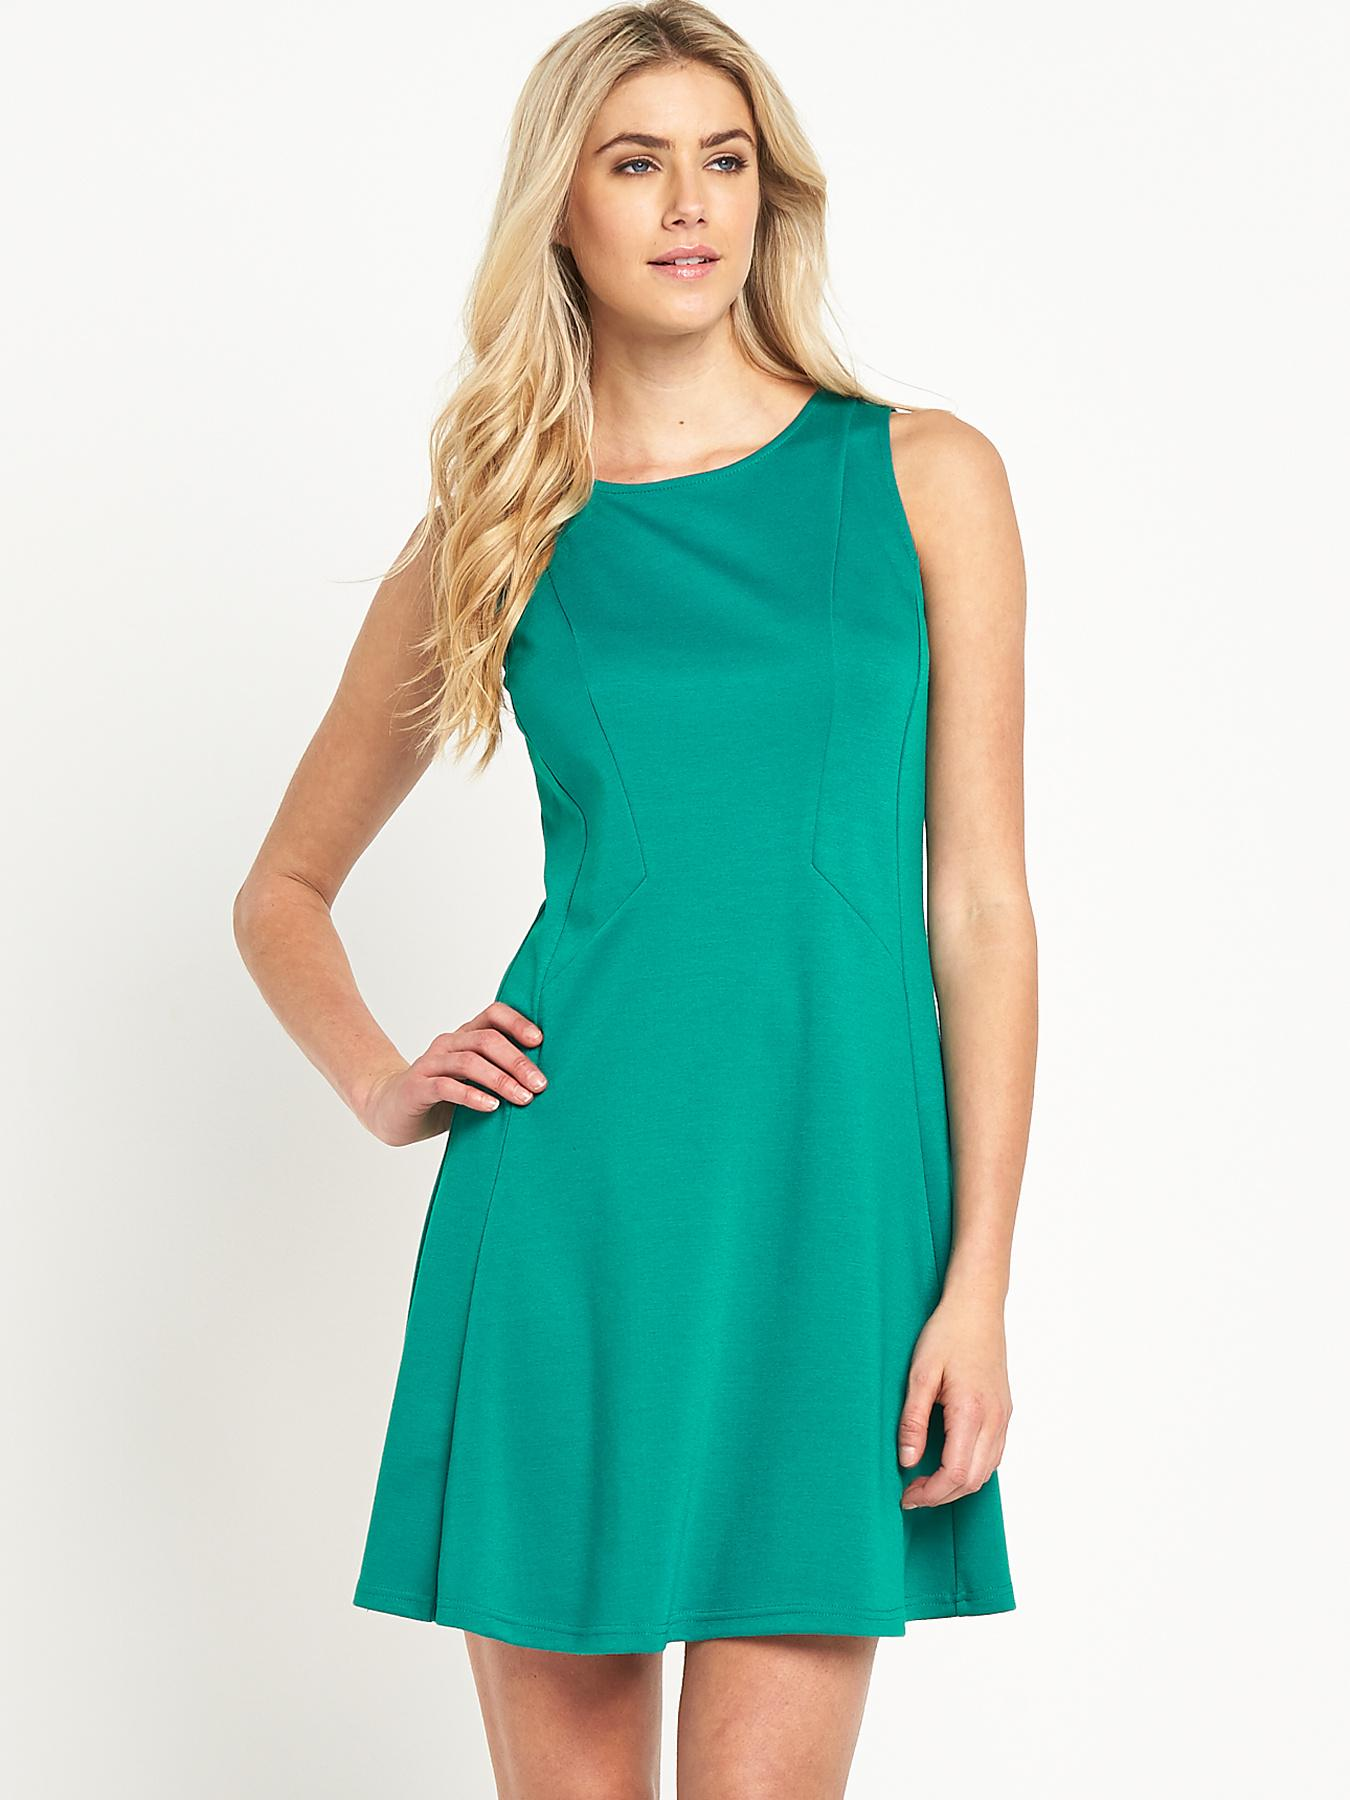 Myleene Klass Pencil Bodycon Dress at littlewoods Find this Pin and more on *New In* Myleene Klass by littlewoods. Shop Very for women's, men's and kids fashion plus furniture, homewares and electricals.